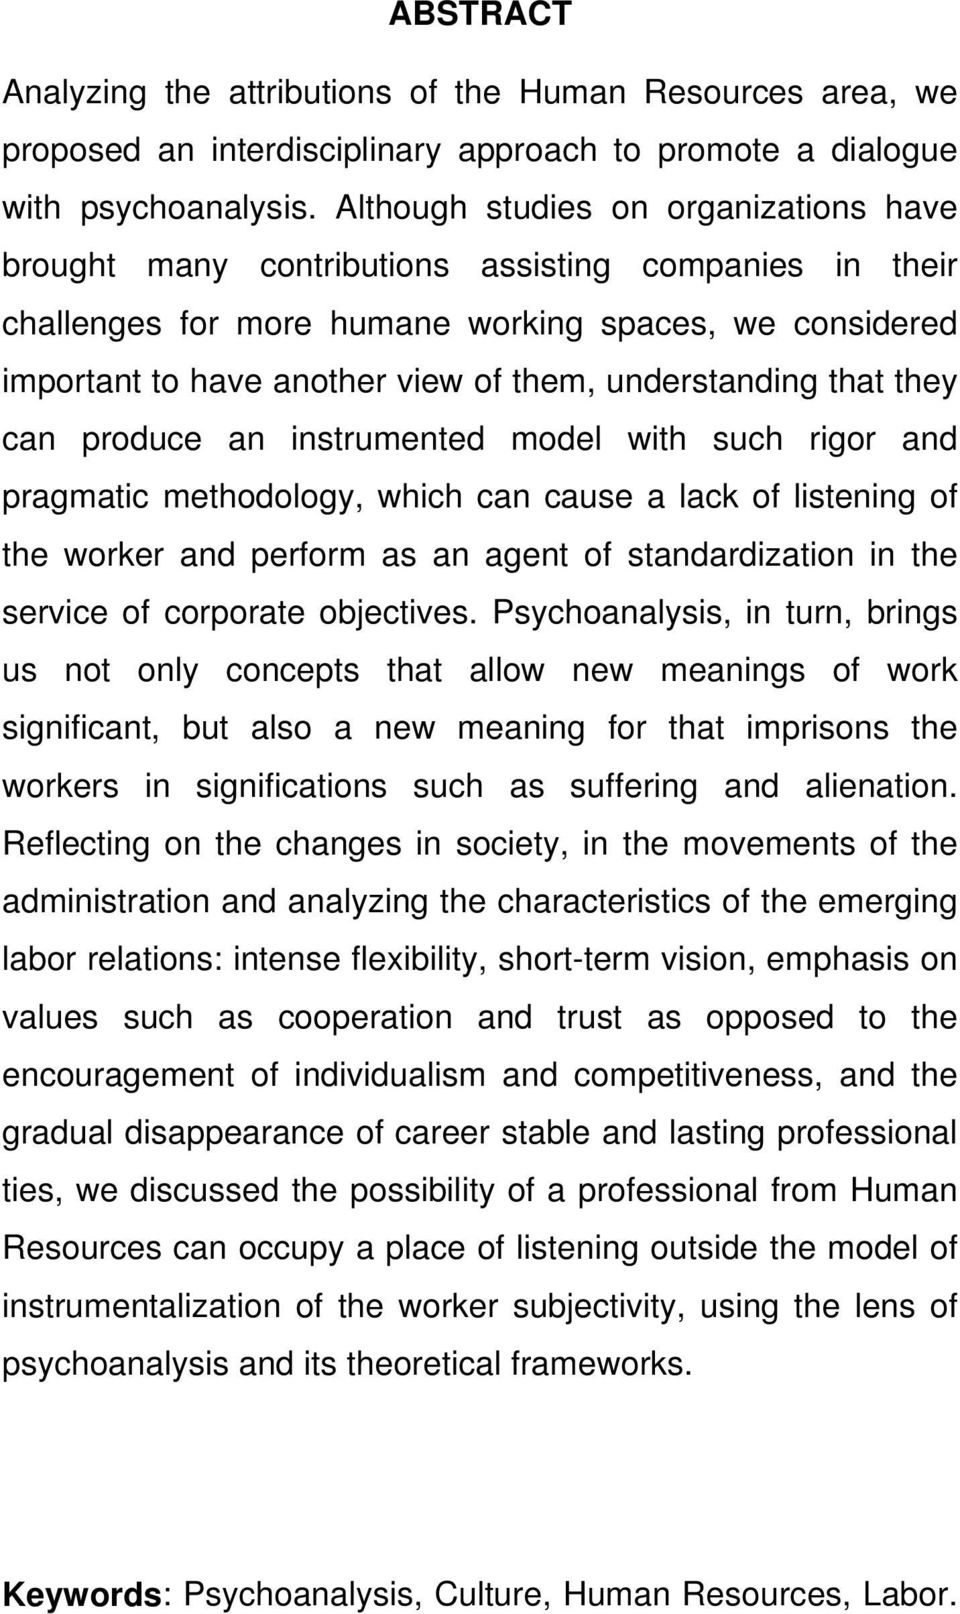 understanding that they can produce an instrumented model with such rigor and pragmatic methodology, which can cause a lack of listening of the worker and perform as an agent of standardization in